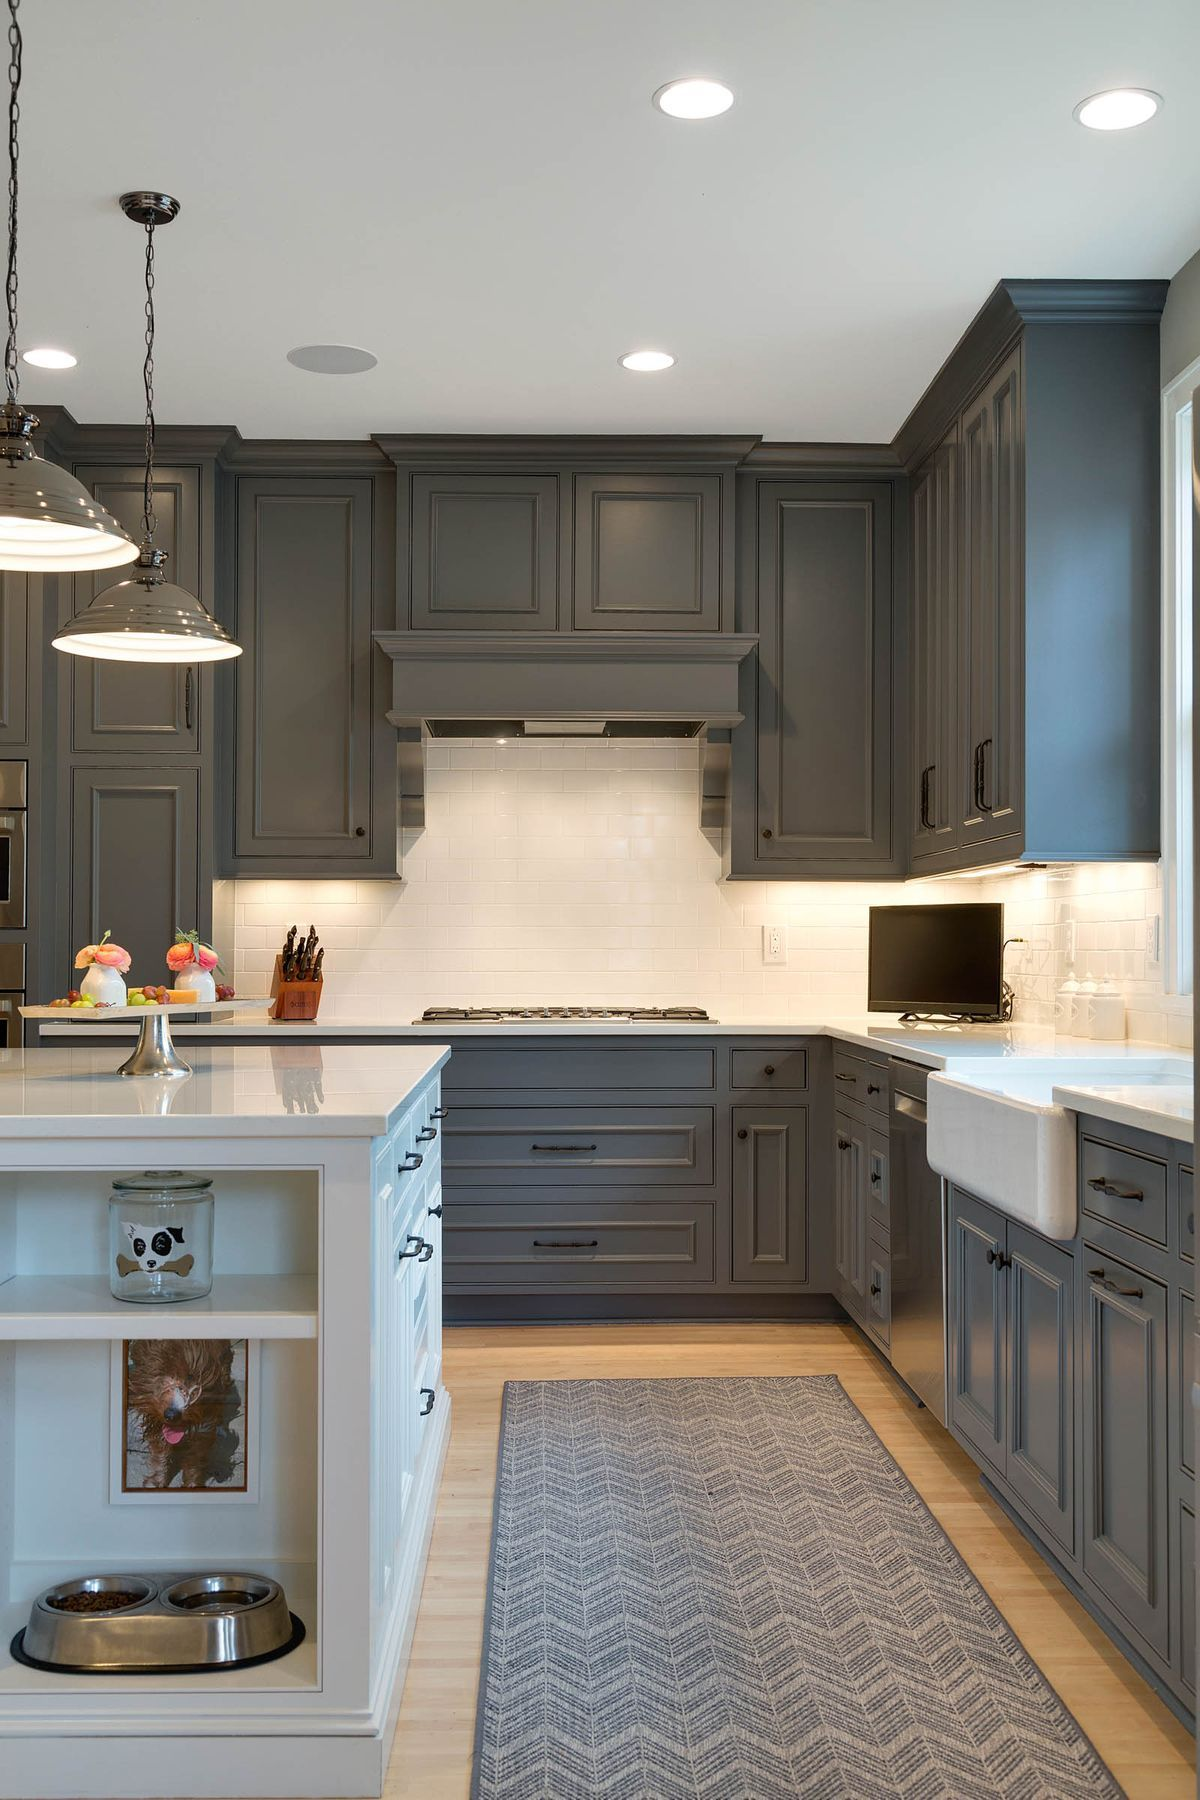 Cccf6e6f9ac3464a20ee60c8edae420c Jpg 1 200 1 800 Pixels Kitchen Remodel Small Painted Kitchen Cabinets Colors Kitchen Remodel